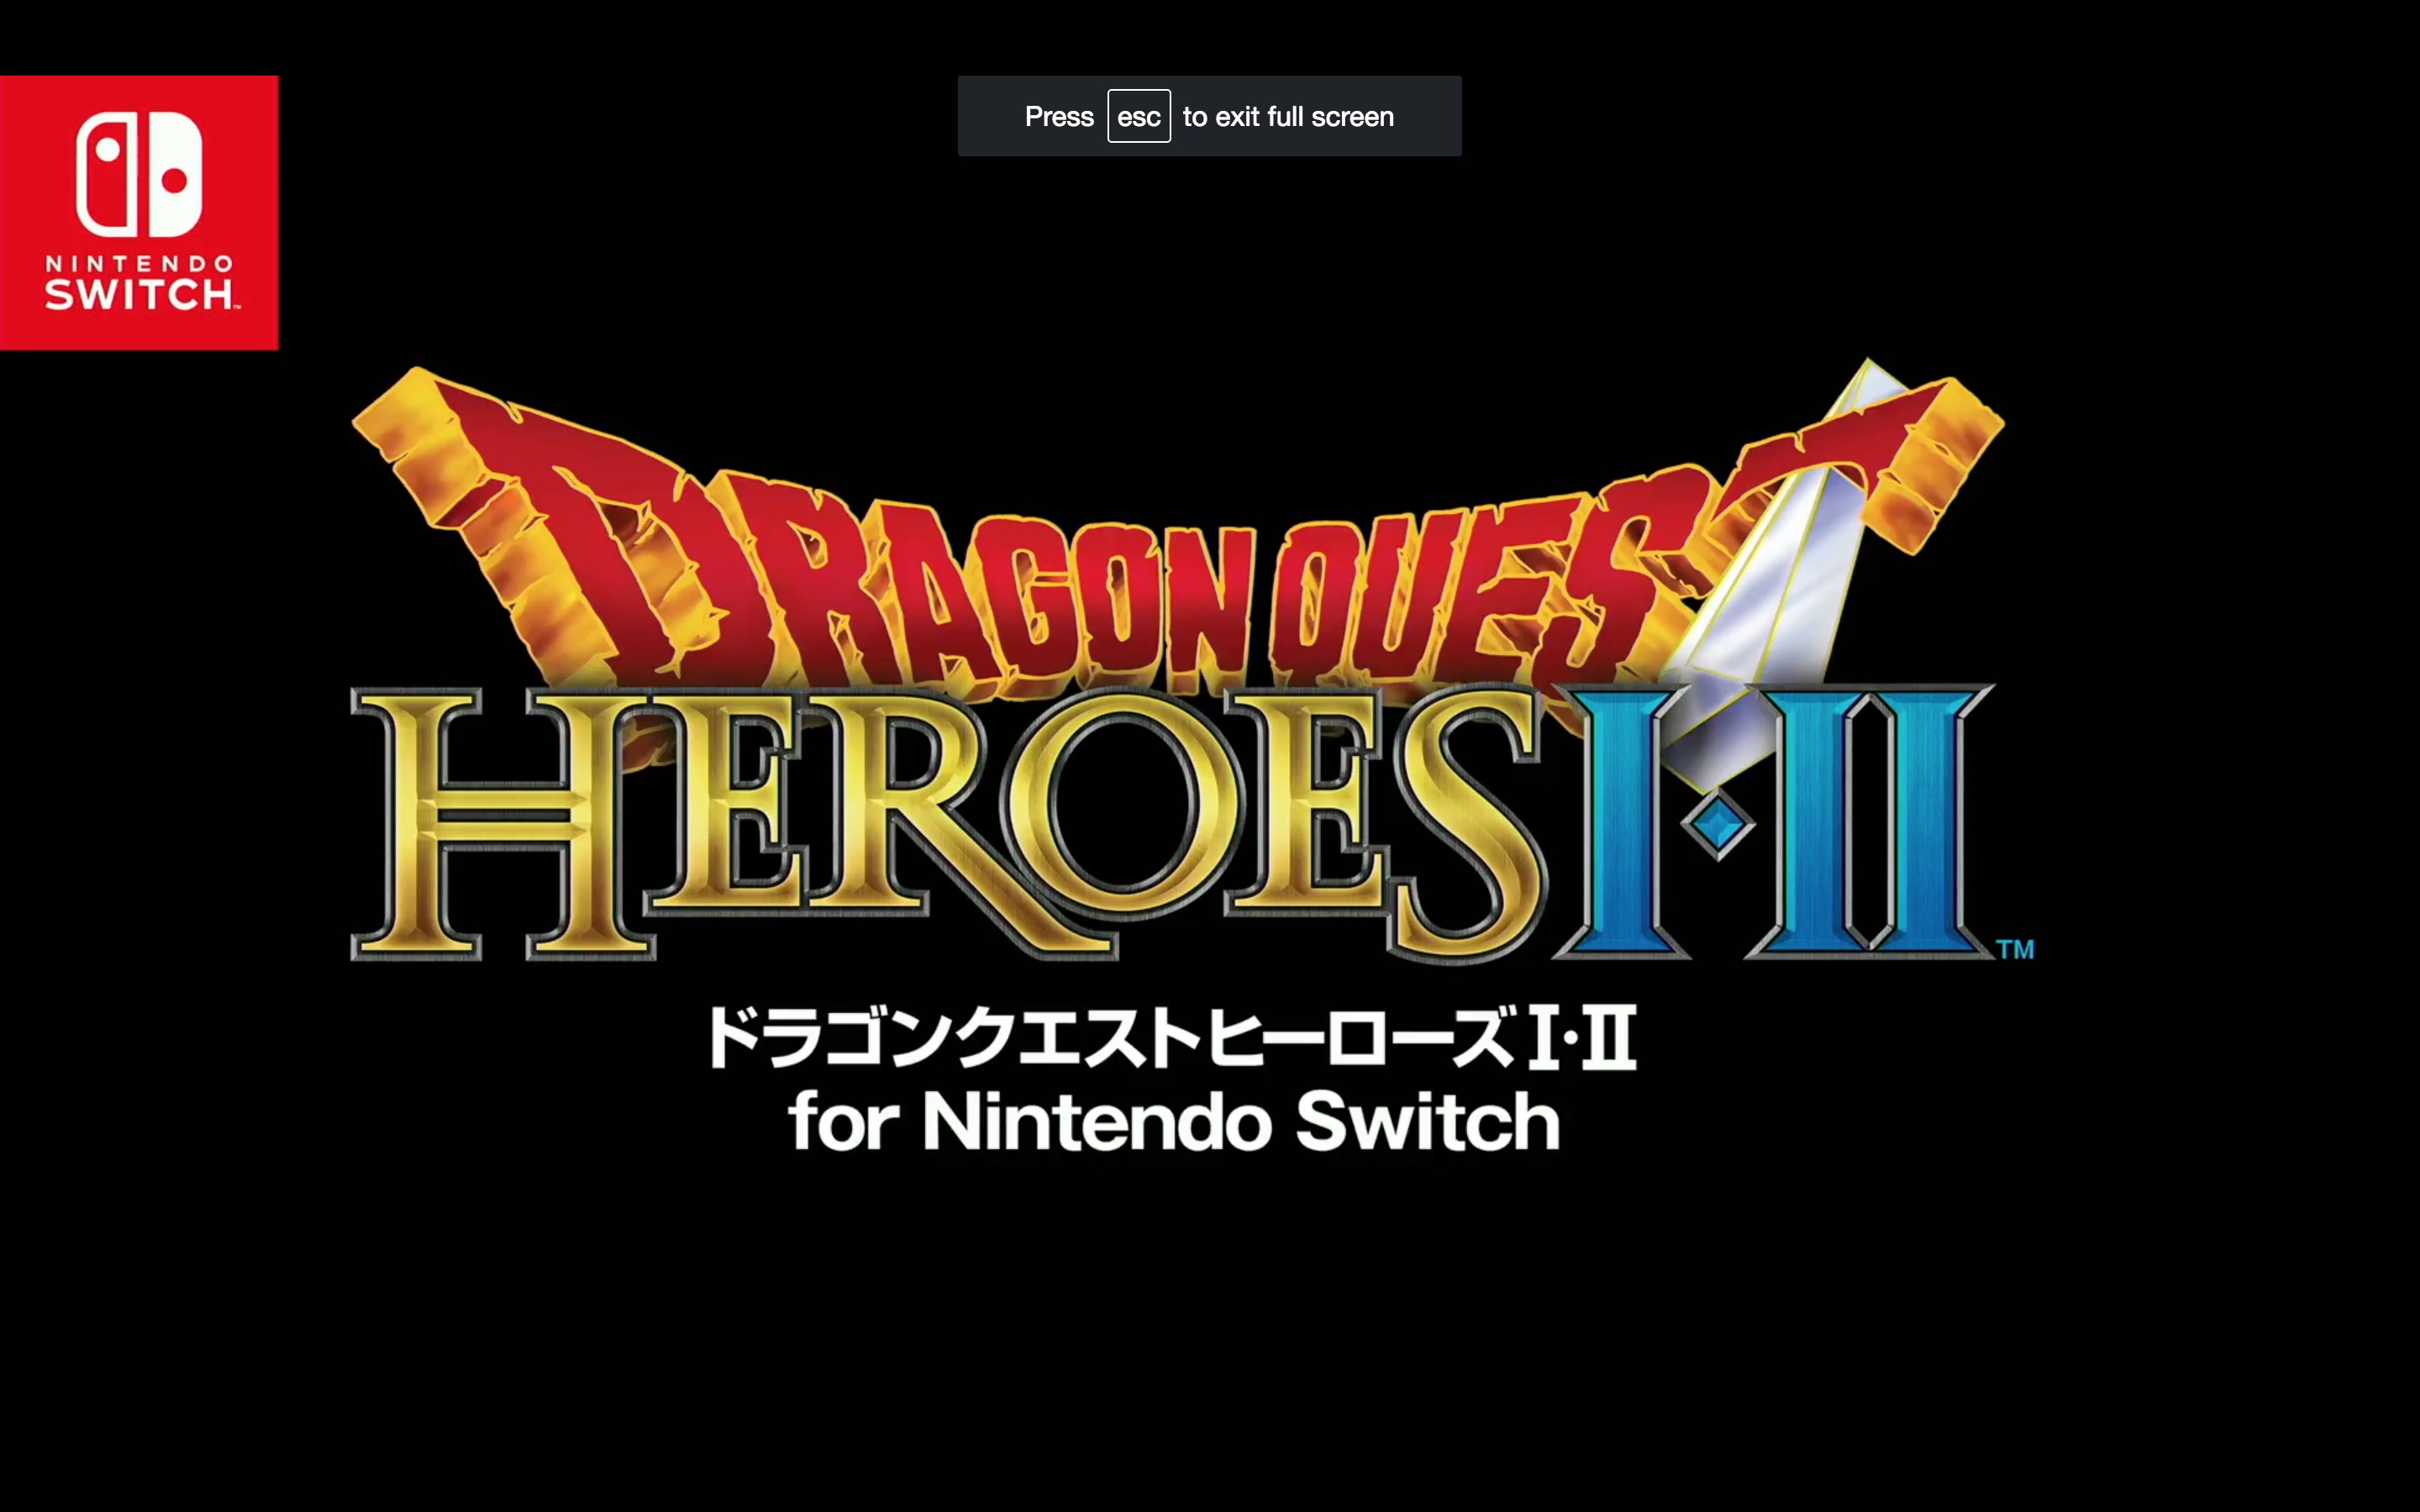 Dragon Quest Heroes I+II title screen from Nintendo Switch presentation